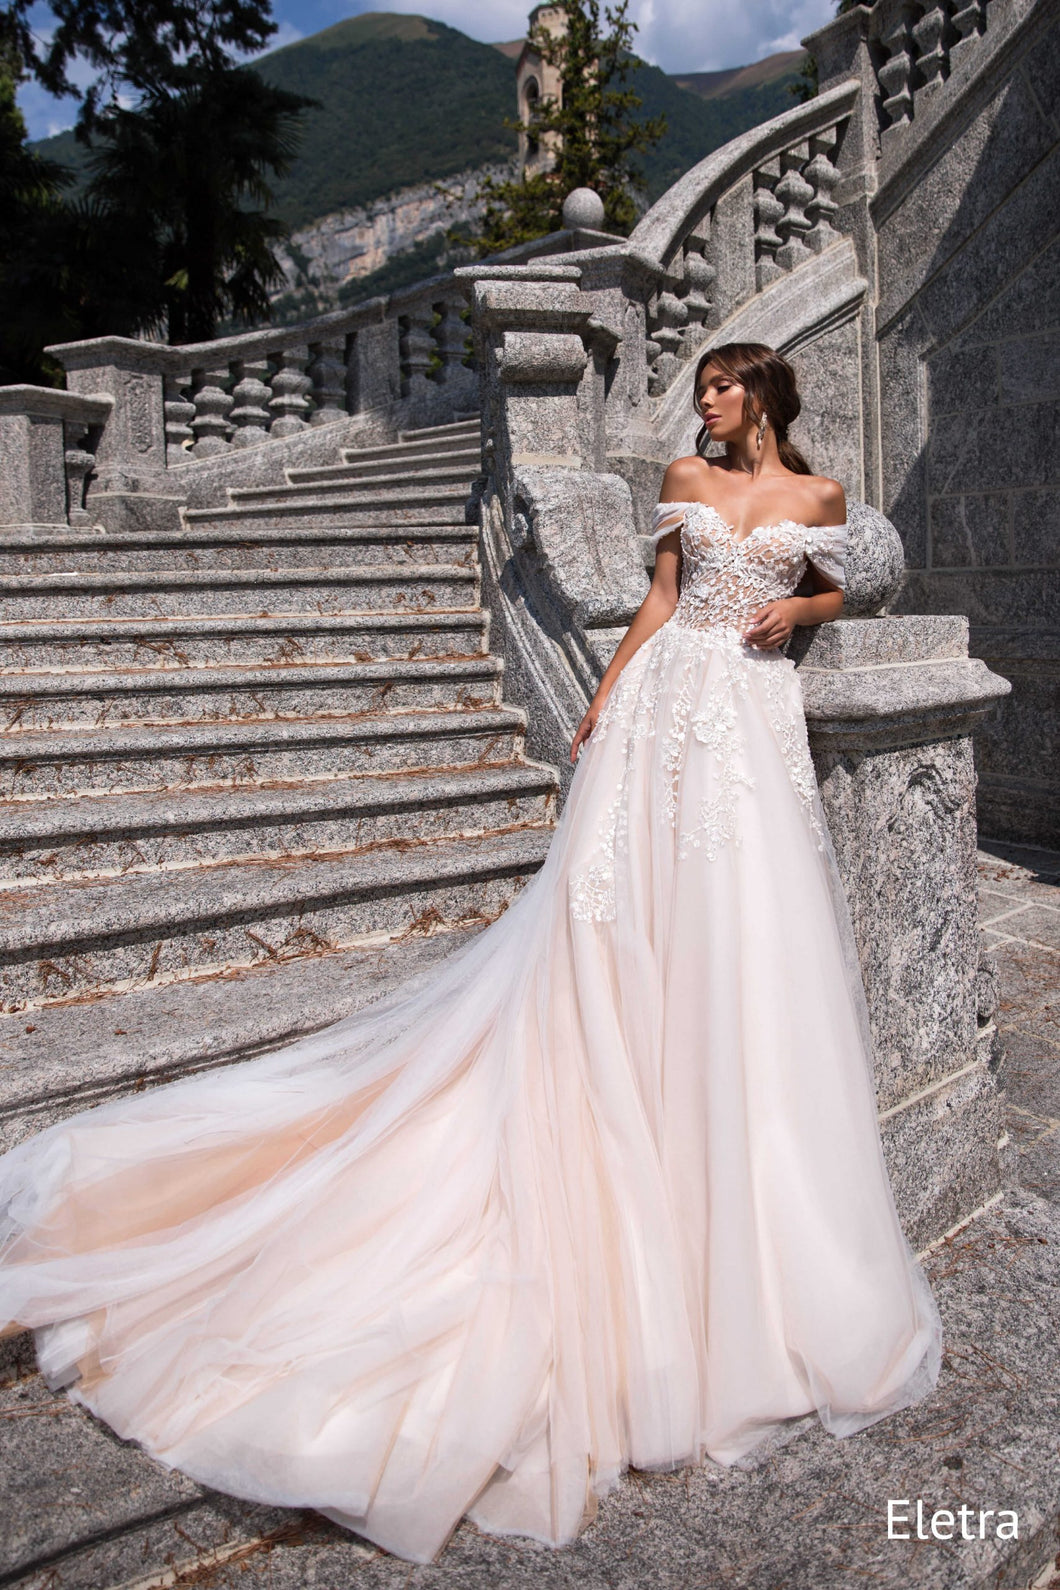 'Eletra' Magica Milano Collection RTW 380